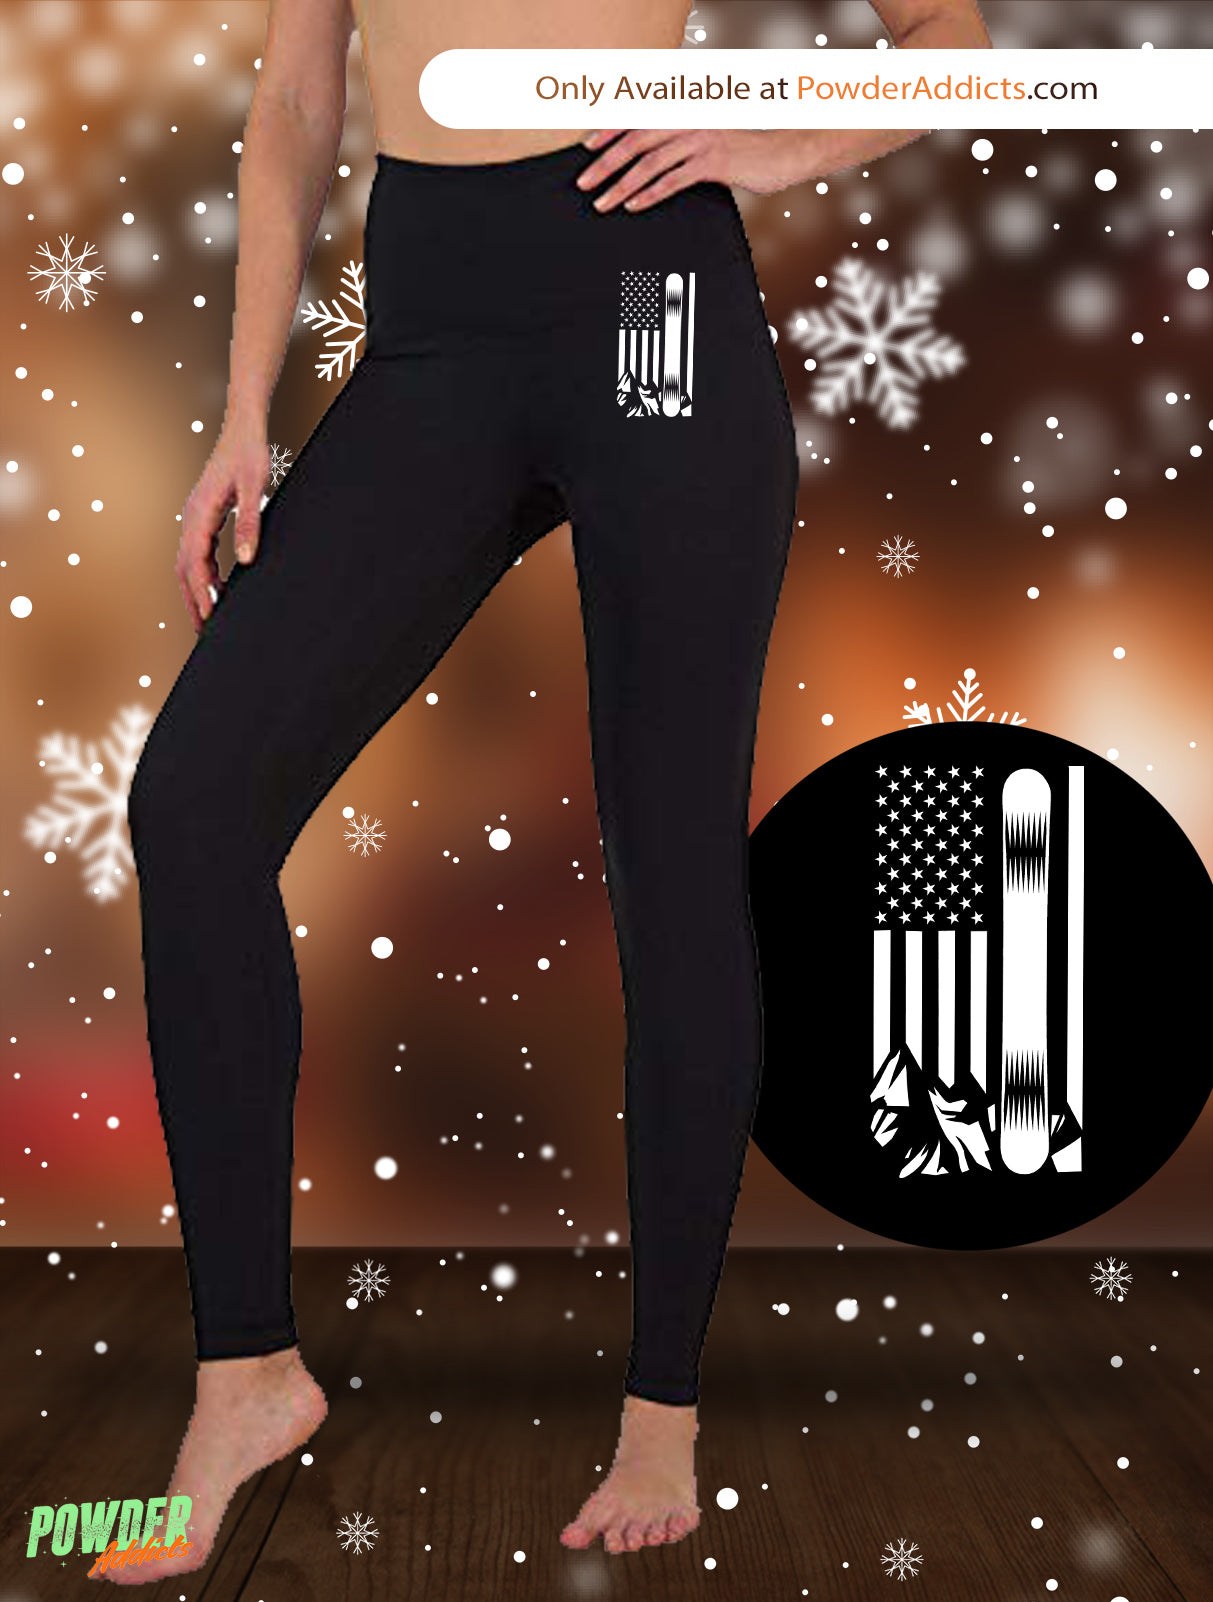 USA Snowboard Flag All White Women's Embroidered Leggings - Powderaddicts